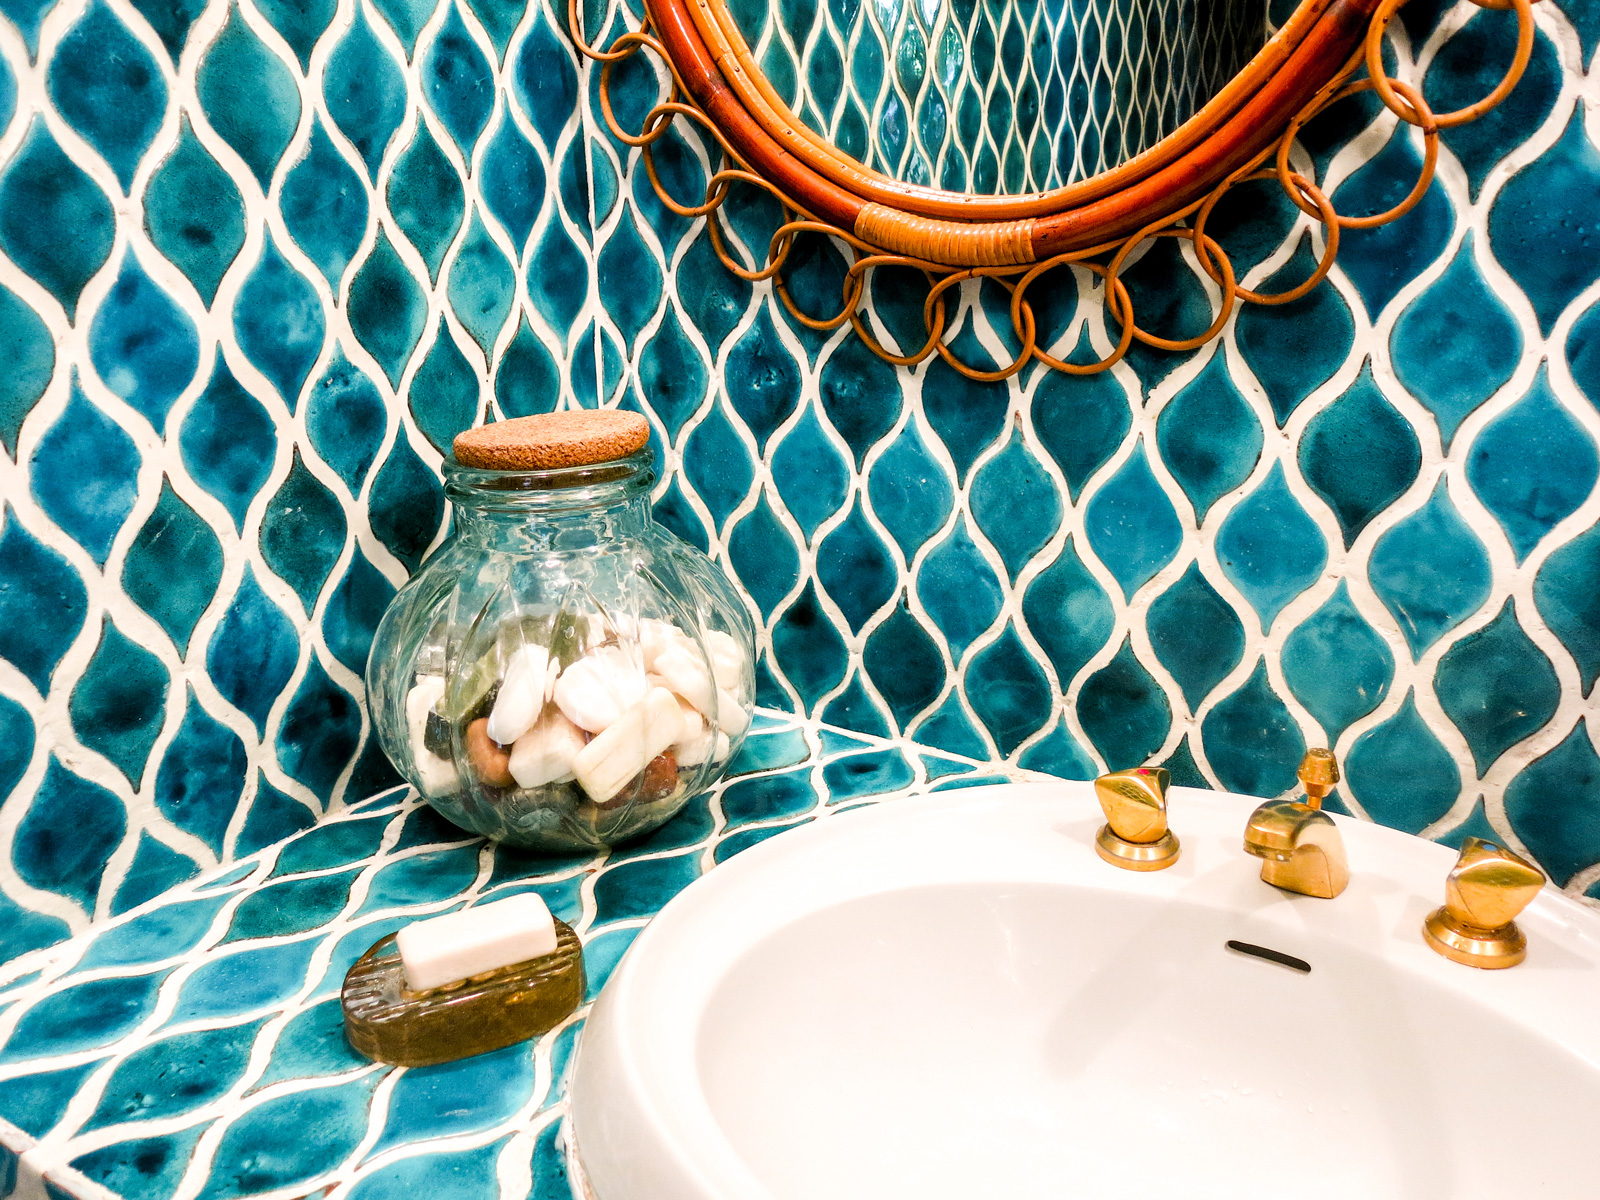 A pretty bathroom counter with a soap dish and a decorative item on it.